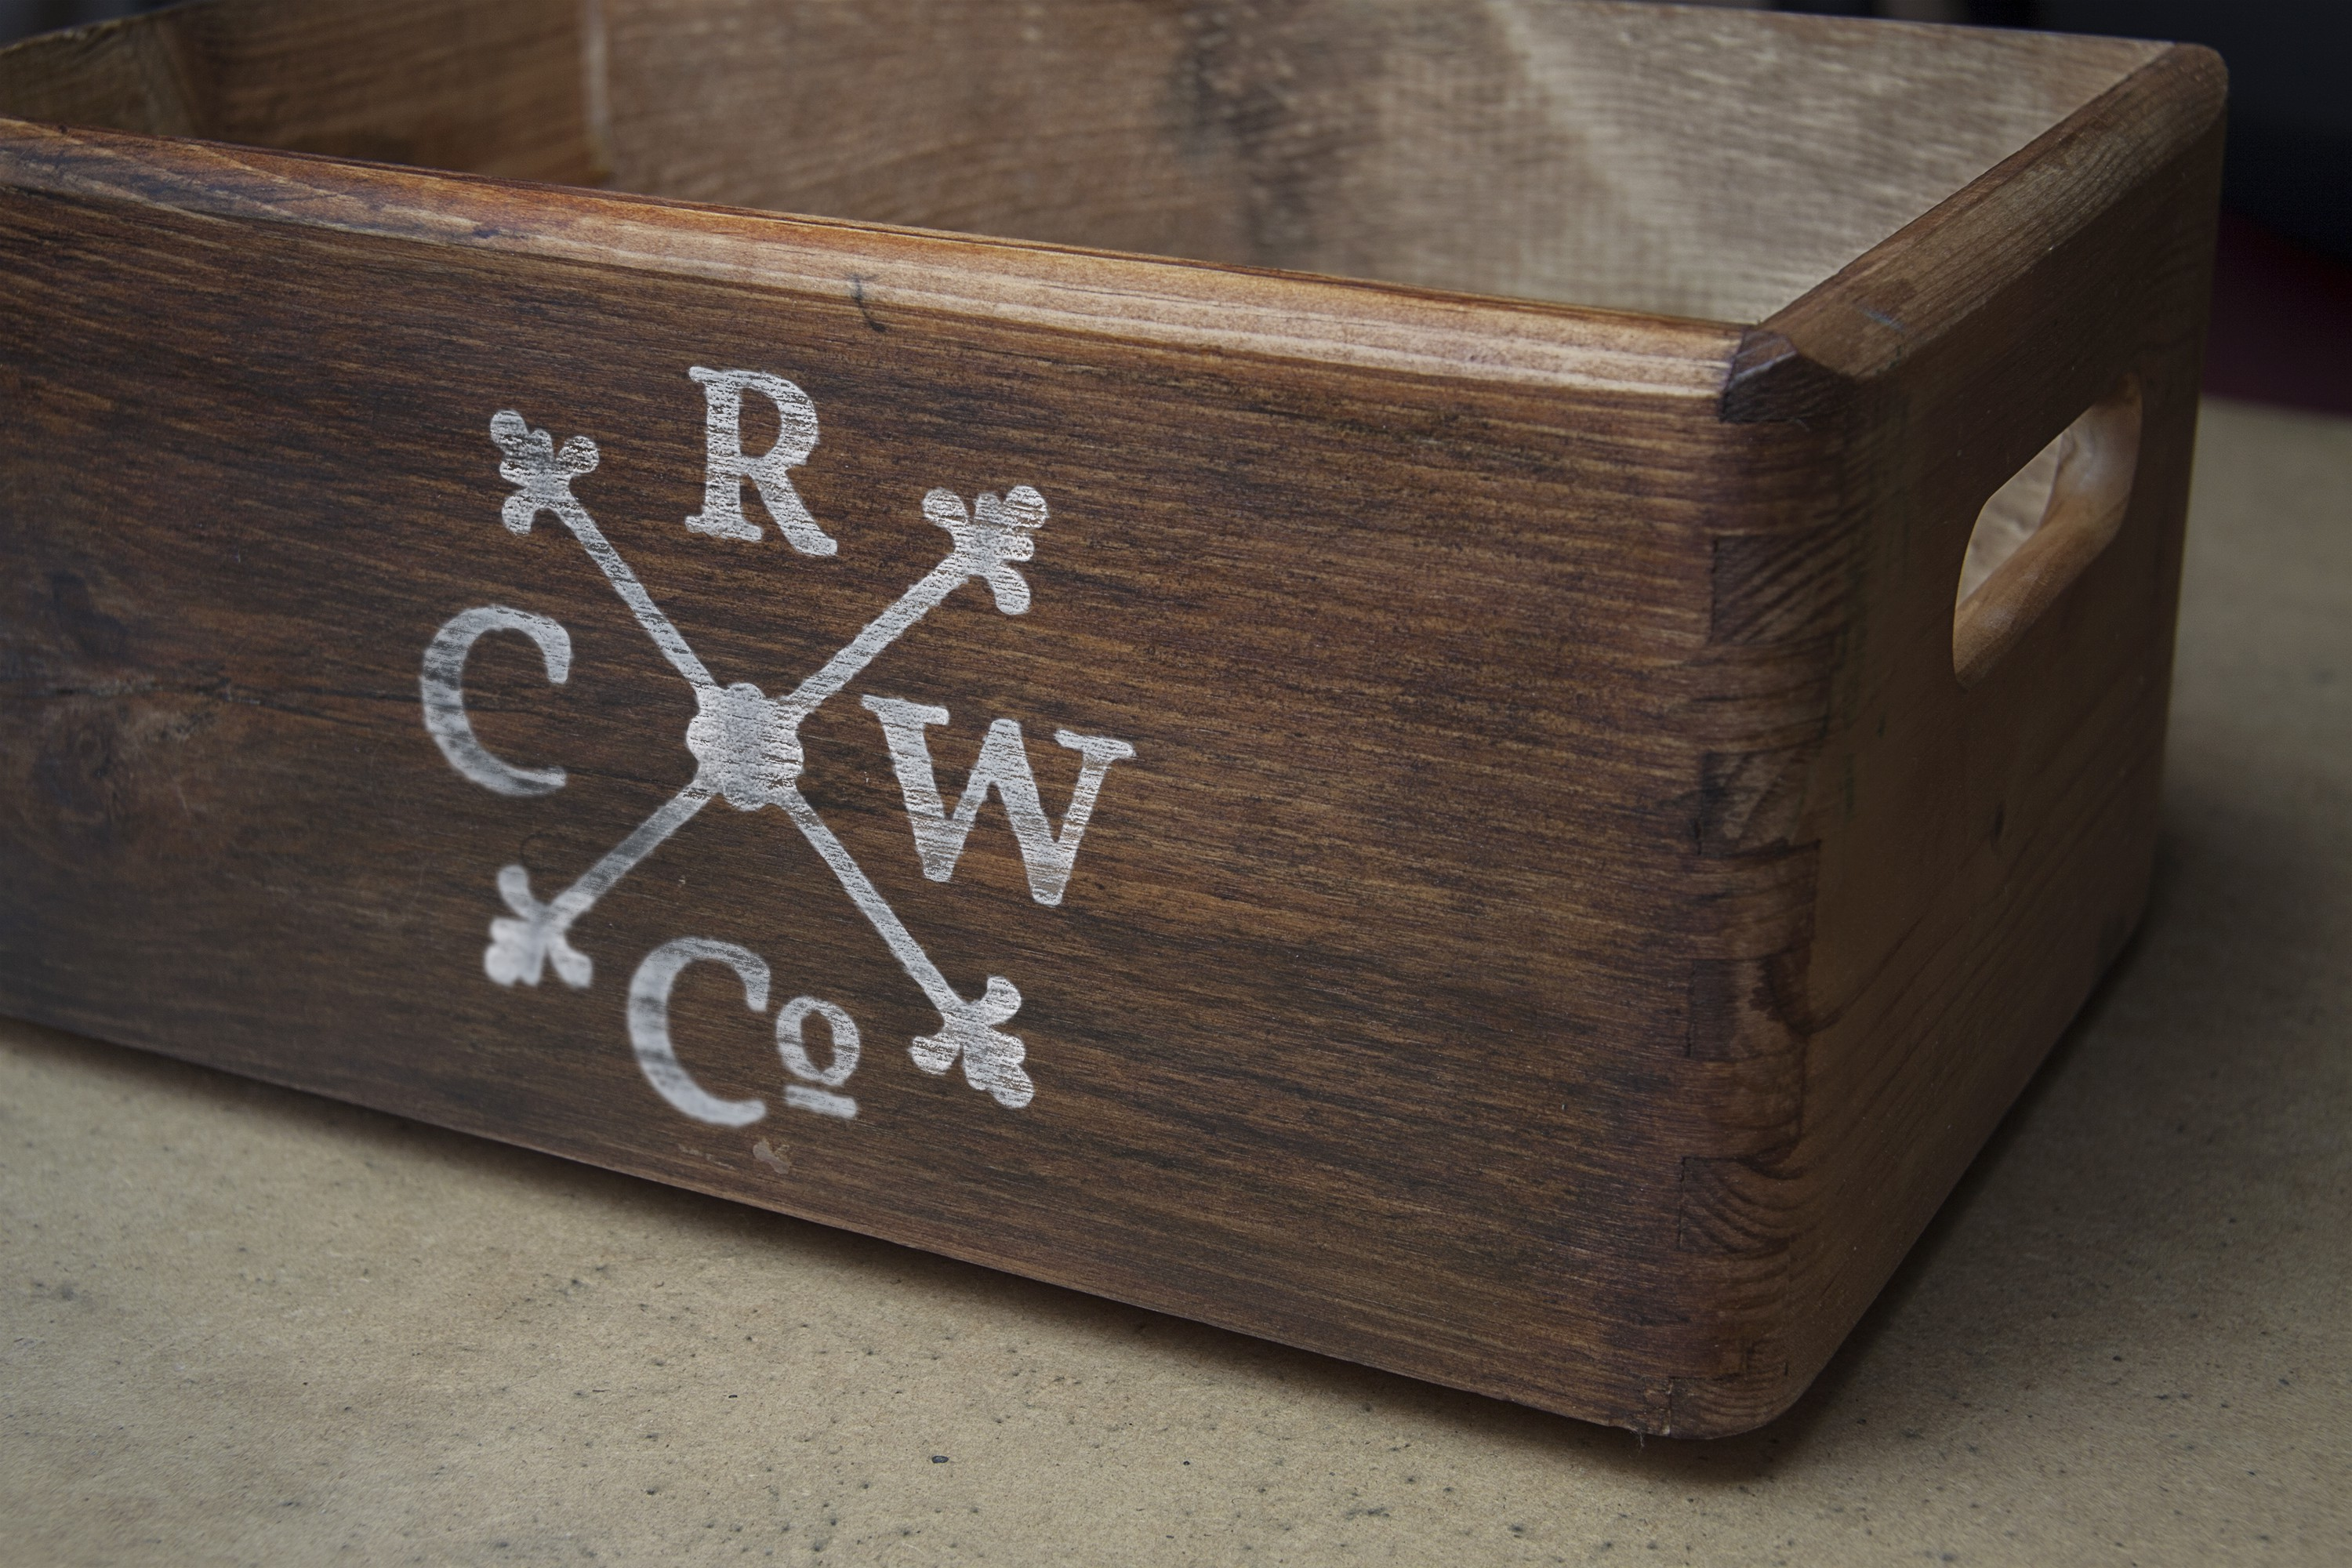 Design a Logo for a Vintage Themed Retail Wine Company